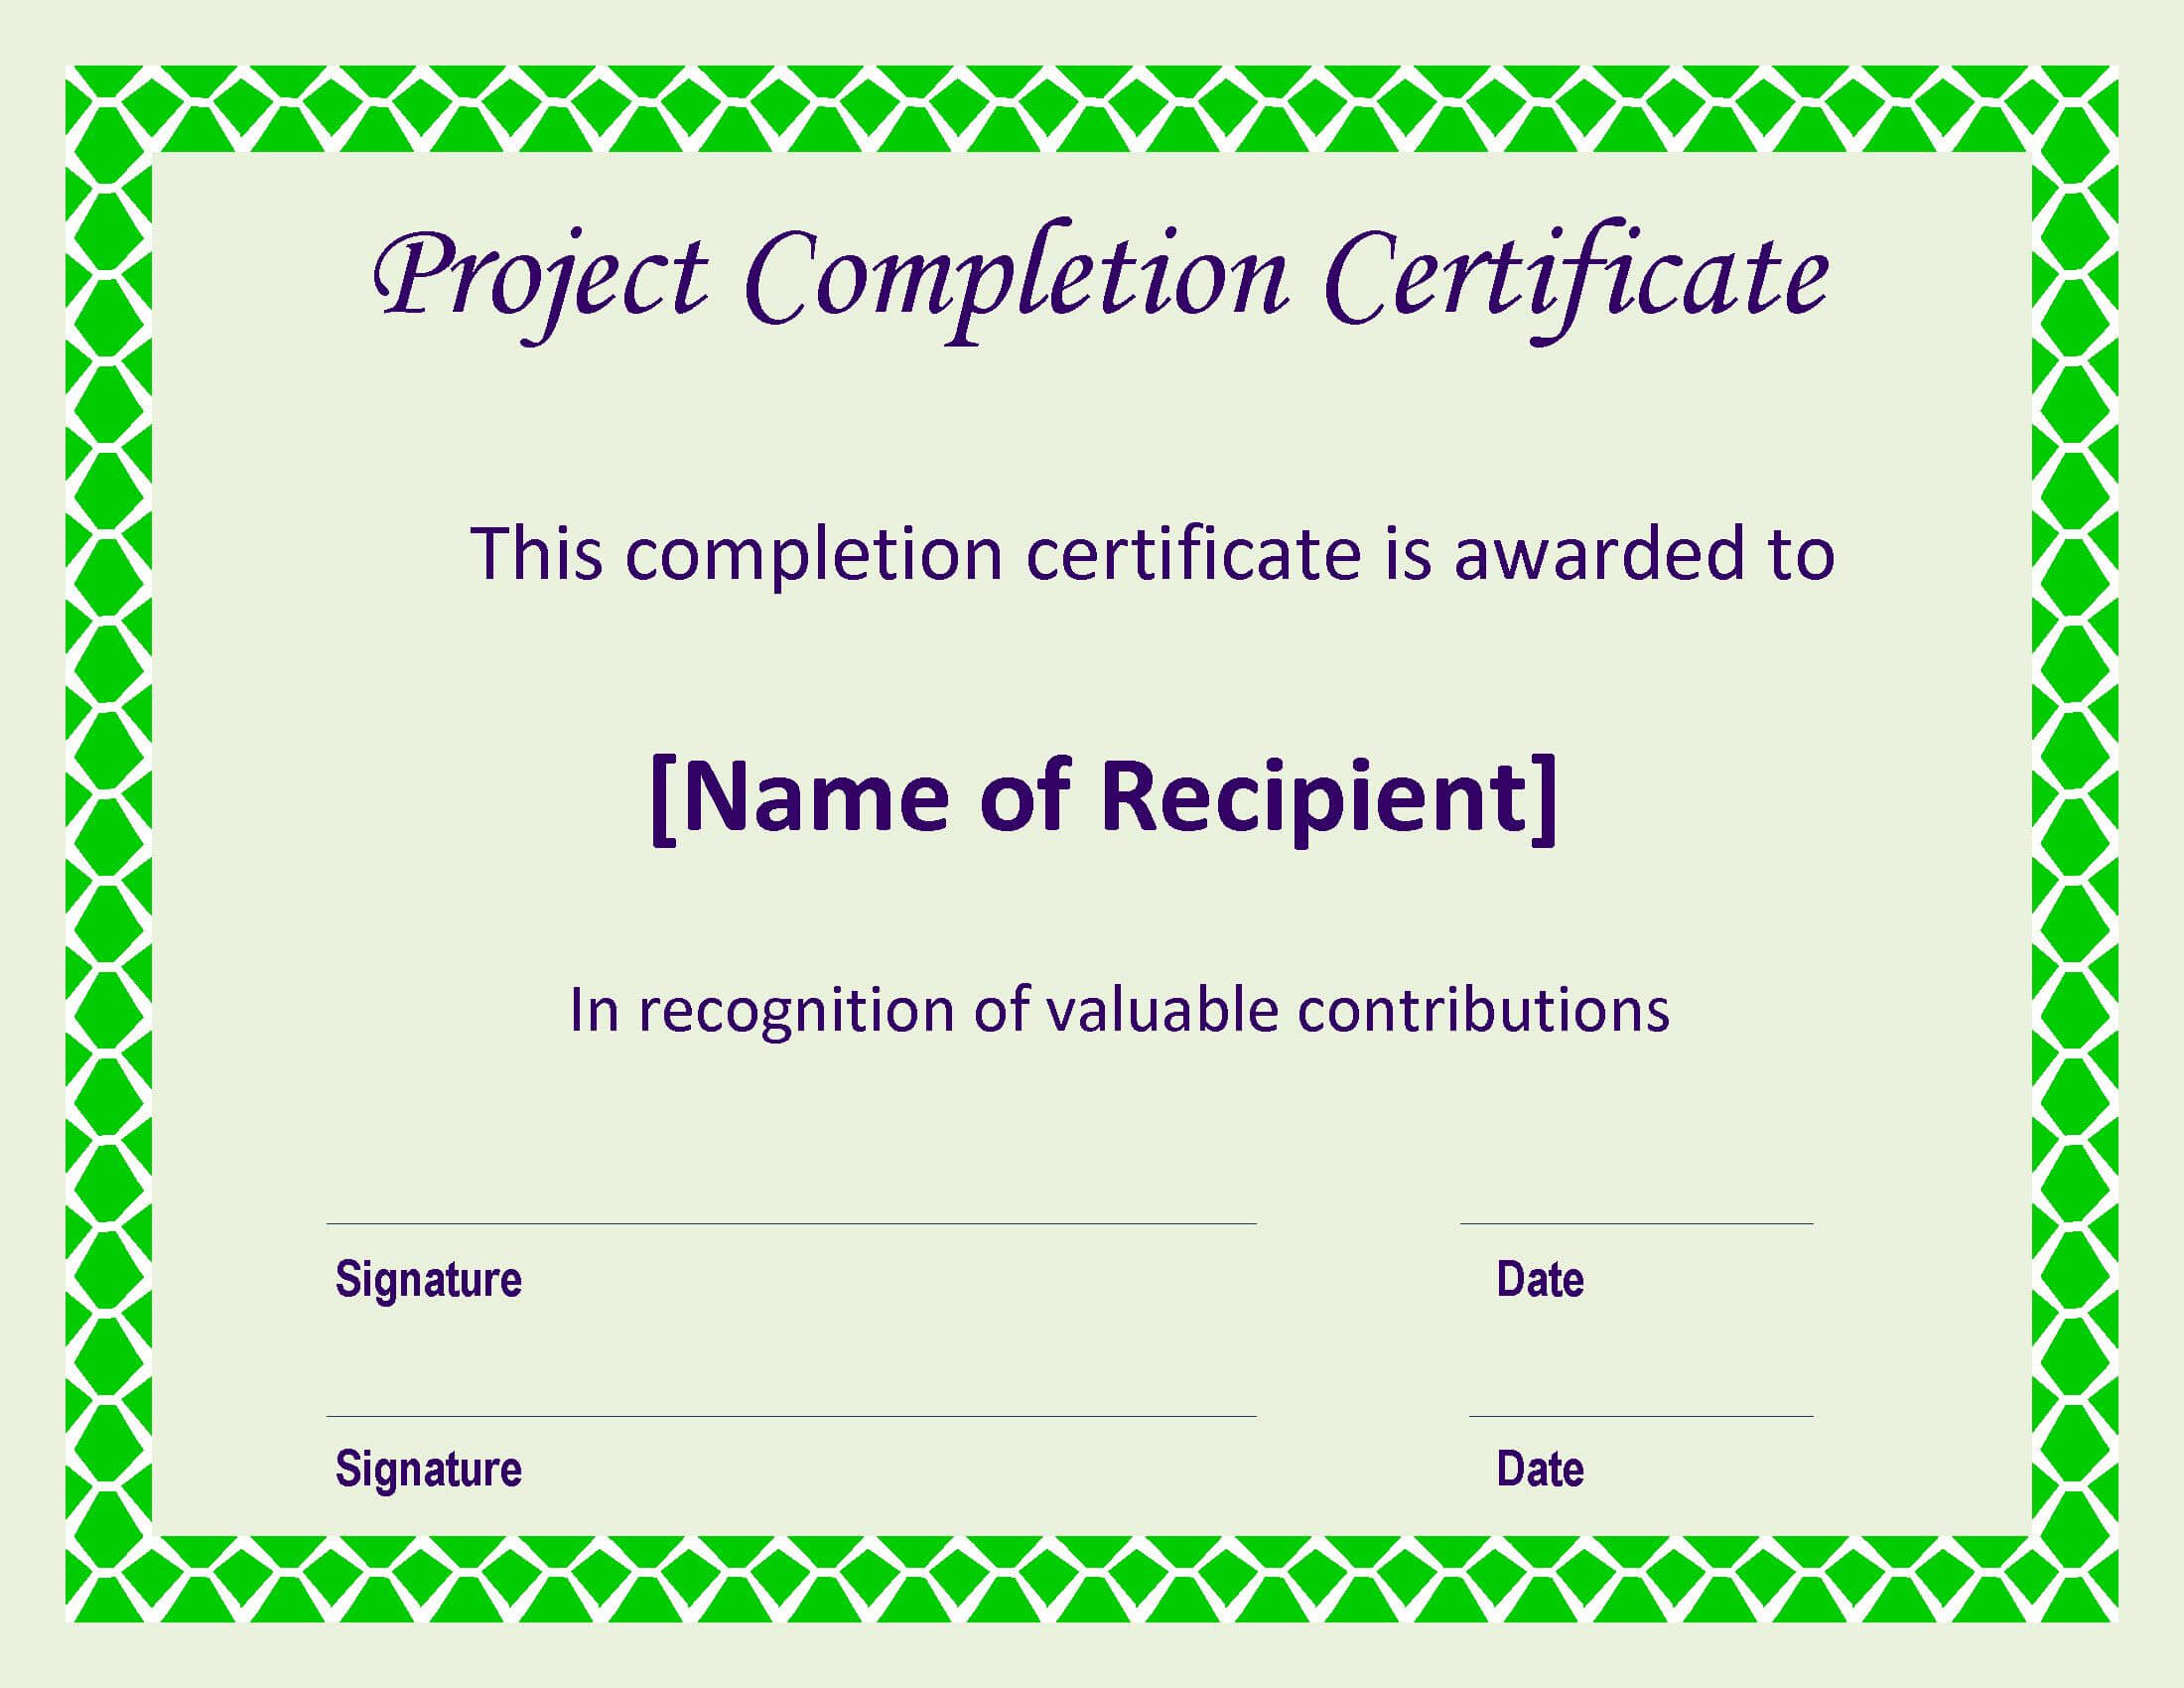 Certificate Of Completion Project | Templates At In Certificate Template For Project Completion